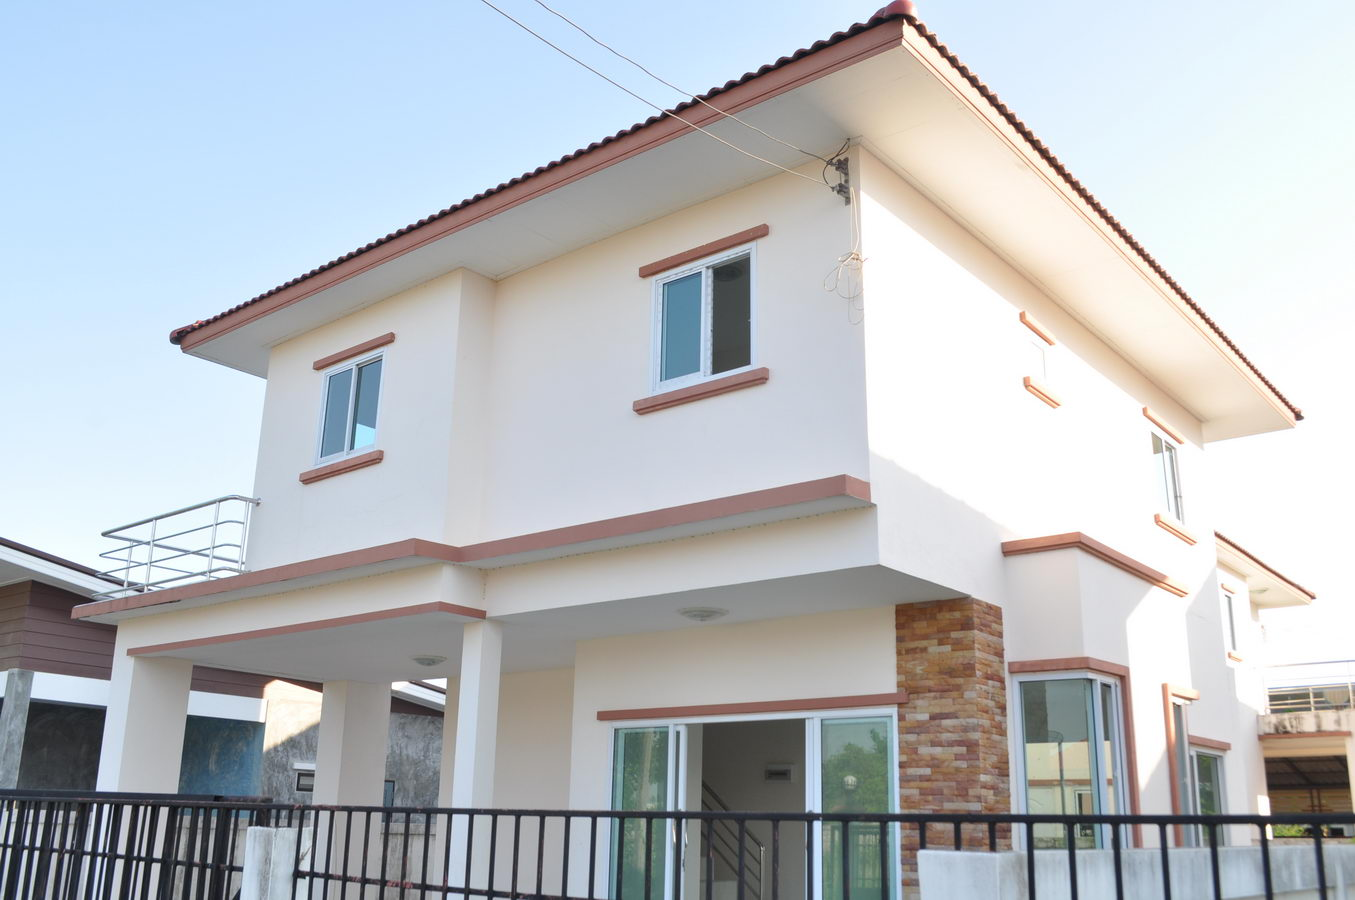 3 Bedroom 2 Bathroom 2 Storey Home For Sale In Prime